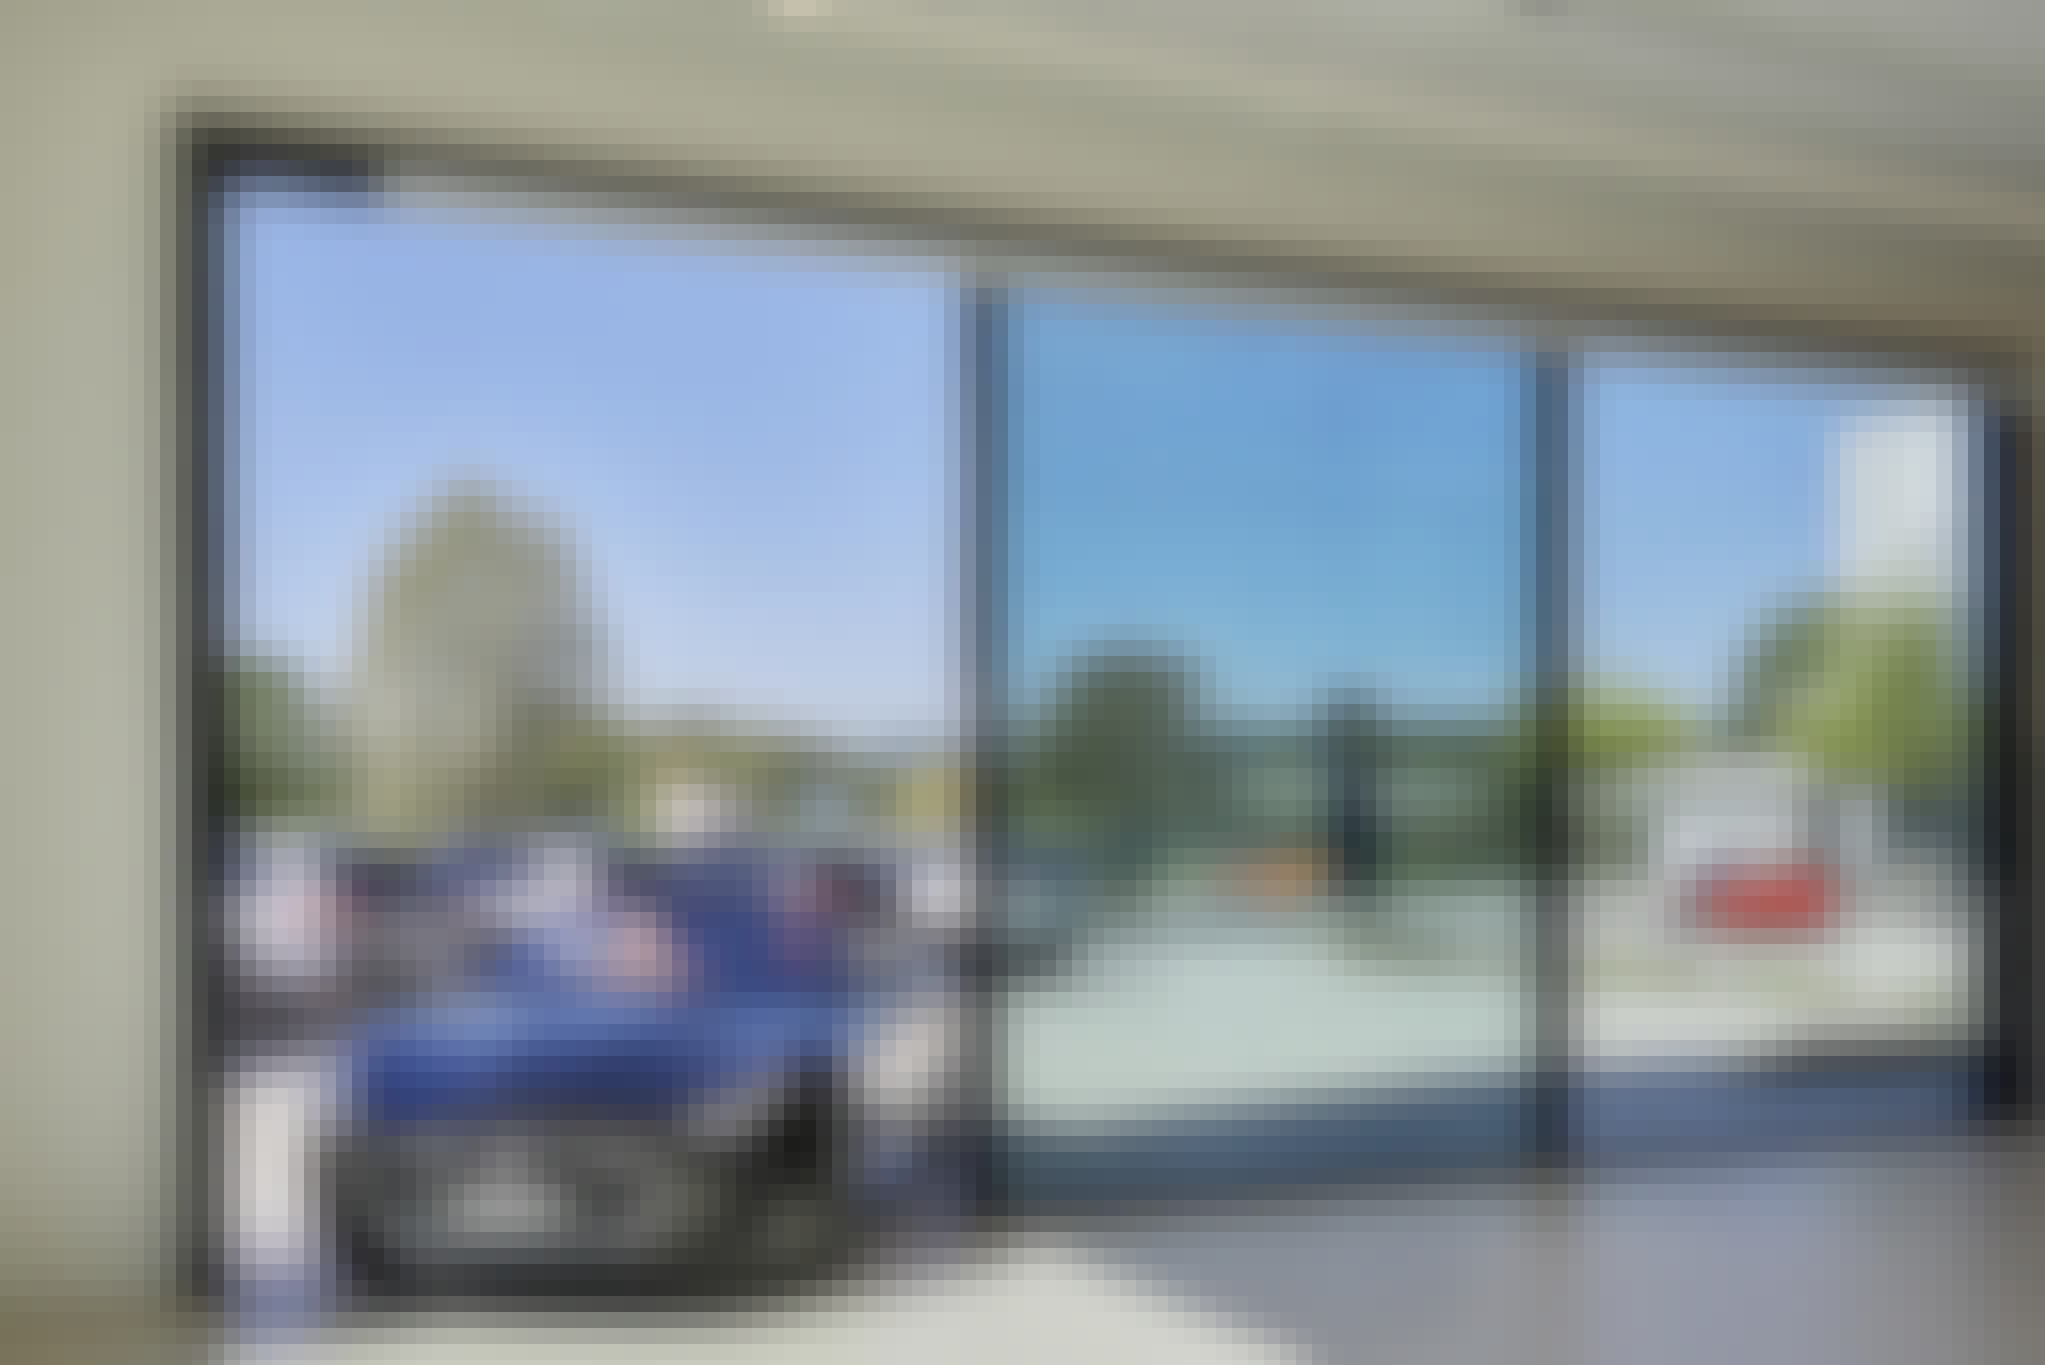 Japanese Walls as Entryway to Dealership Showroom